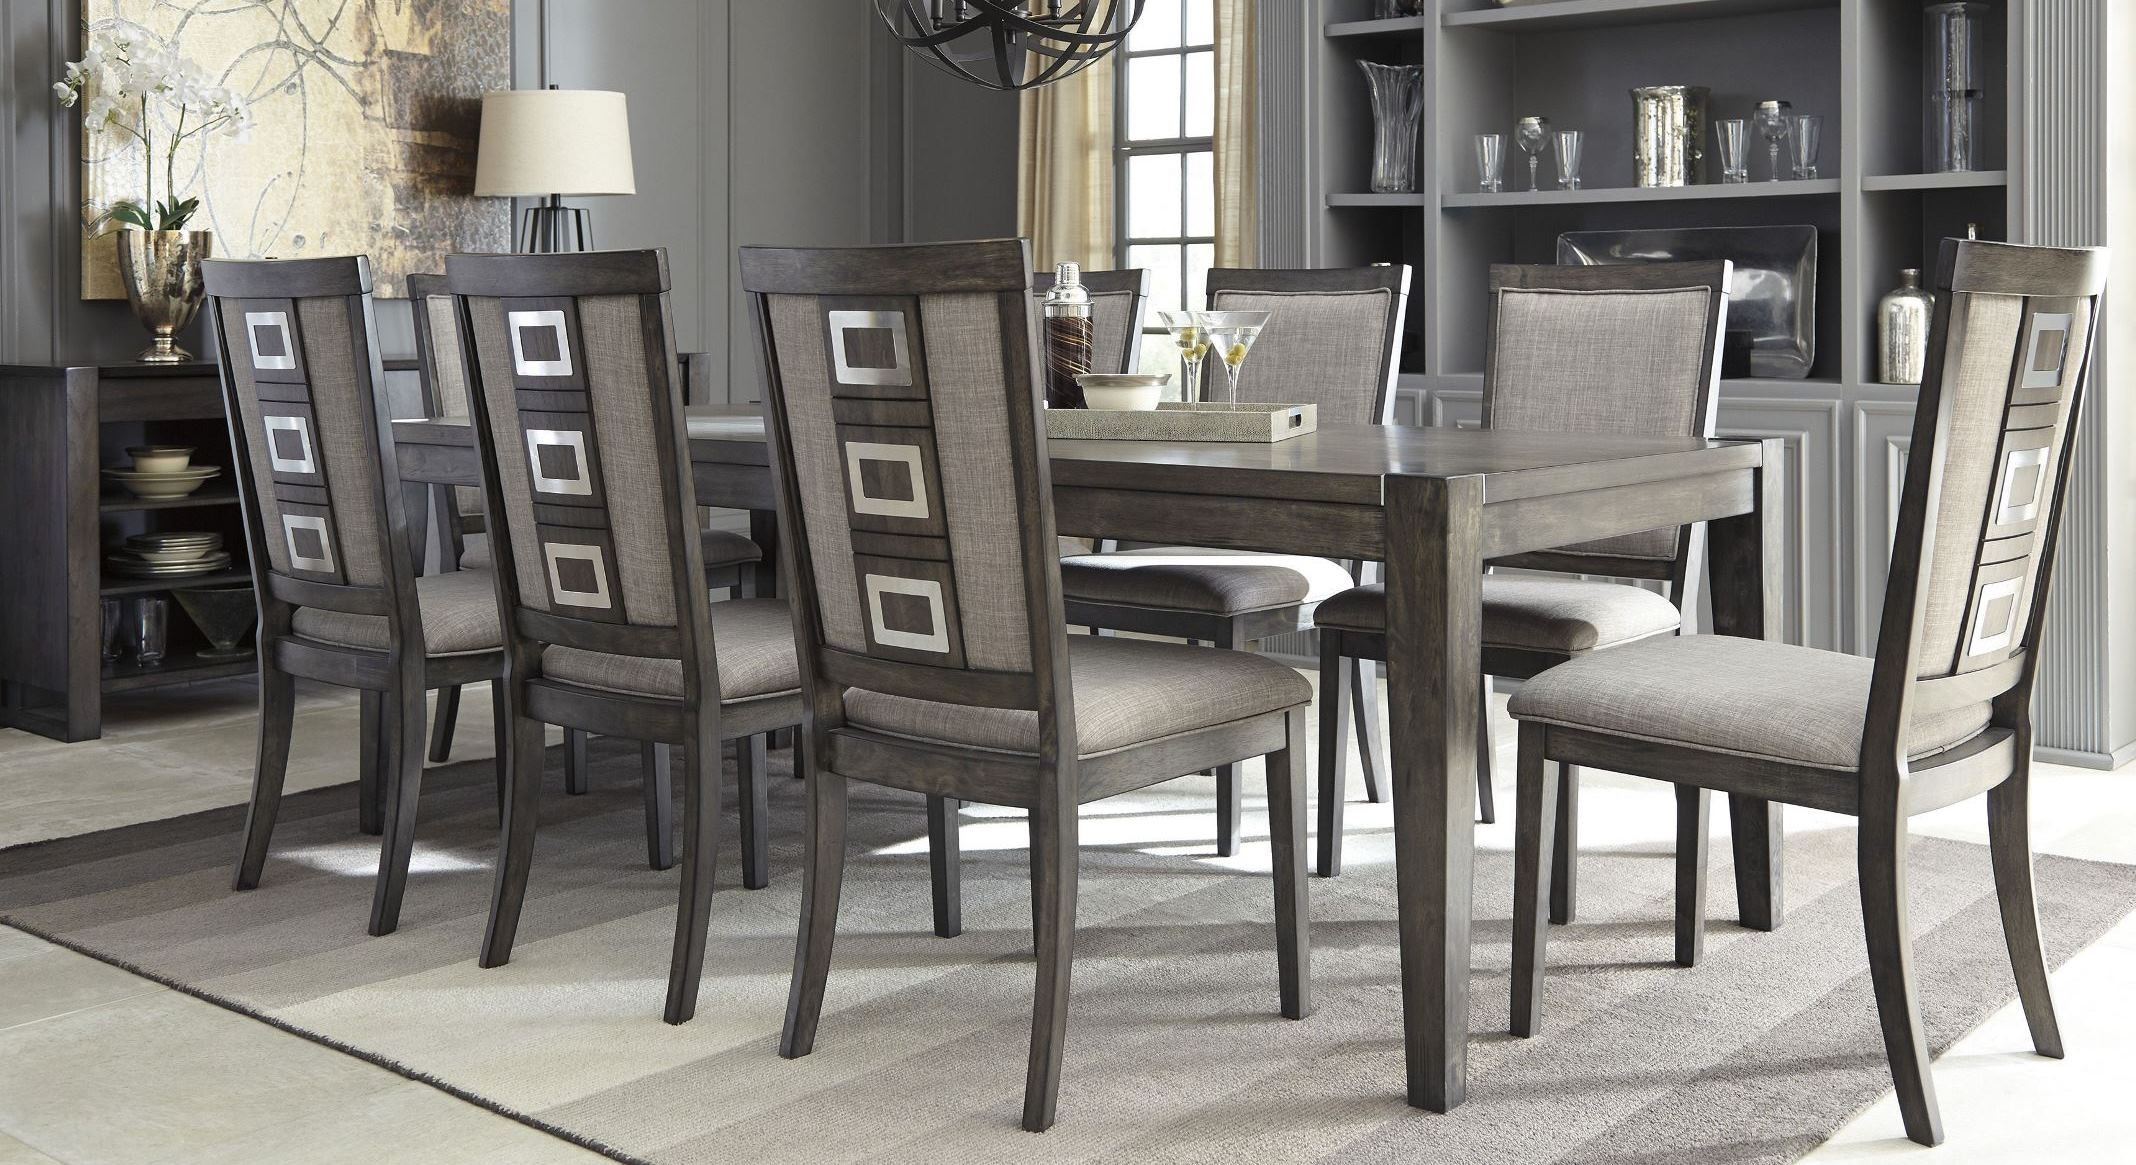 cheap upholstered chairs extra large anti gravity chair with side table chadoni gray rectangular extendable dining room set from ashley | coleman furniture